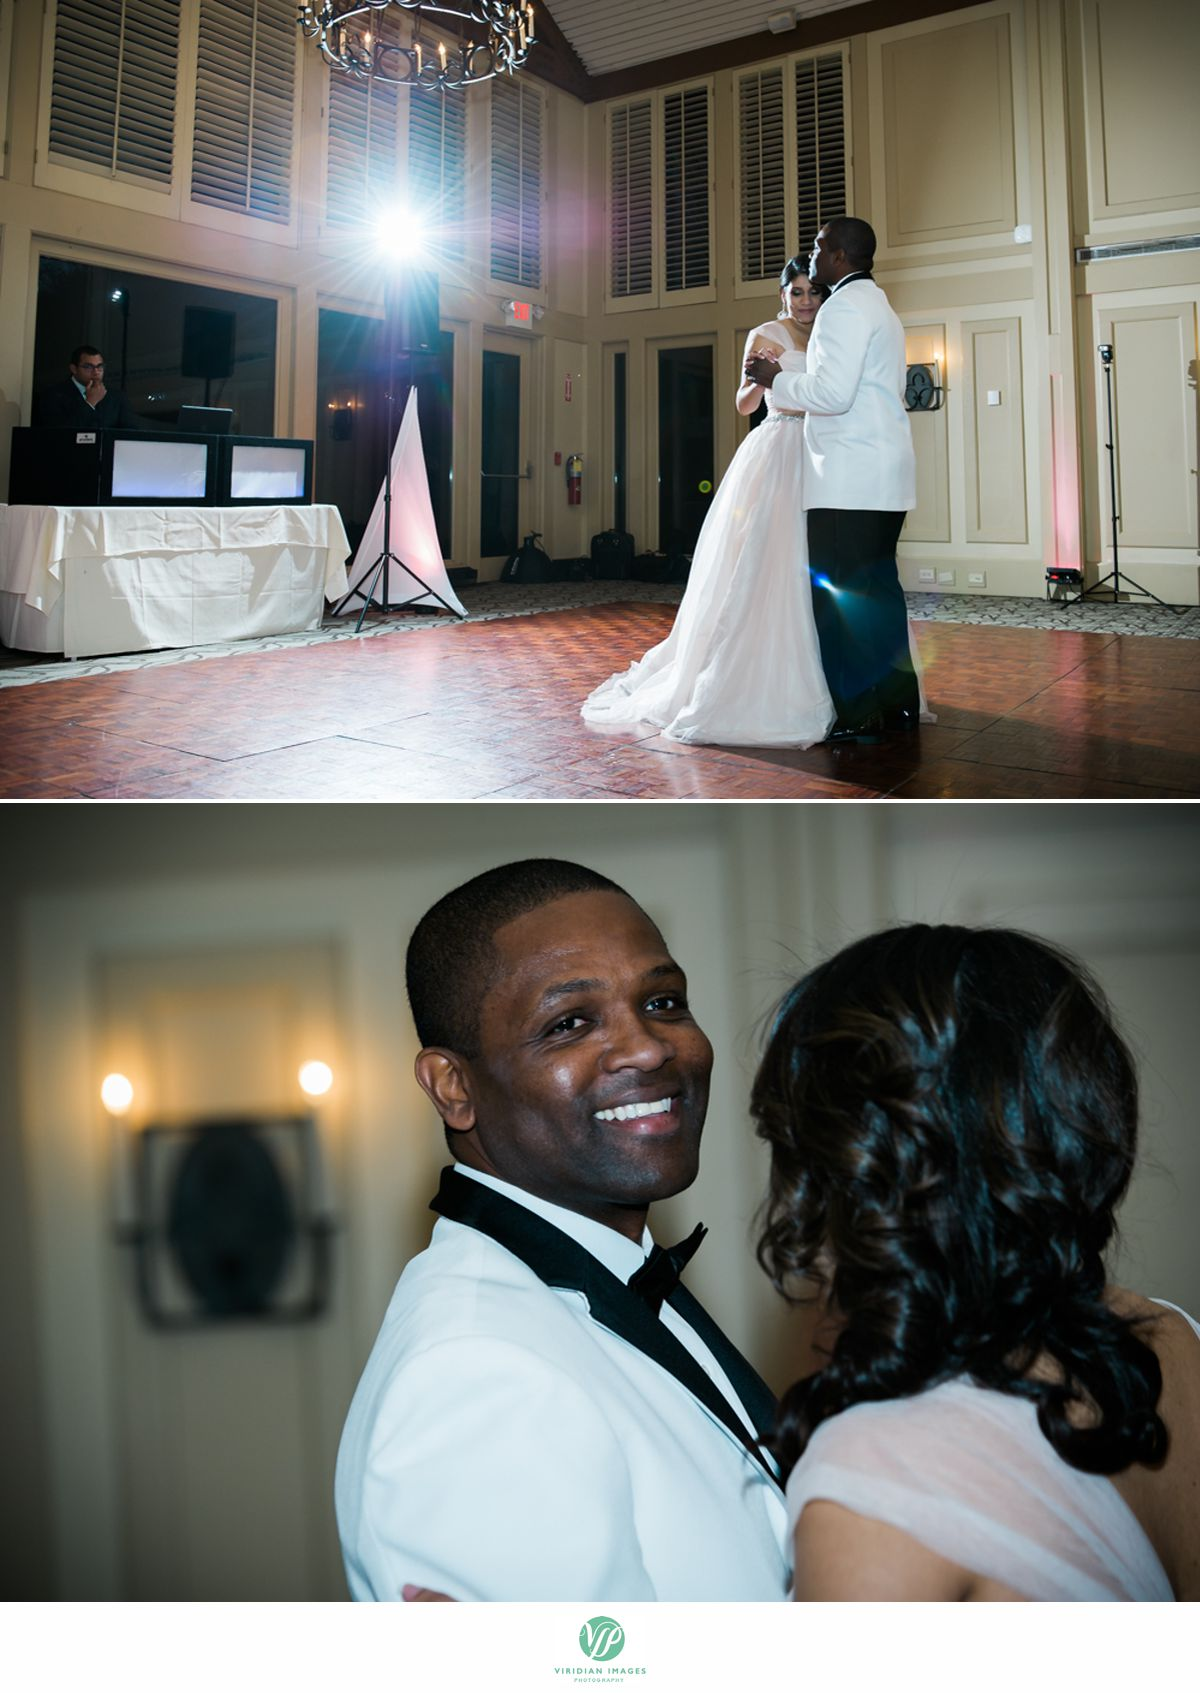 Country Club of the South Johns Creek GA Wedding first dance photo 23